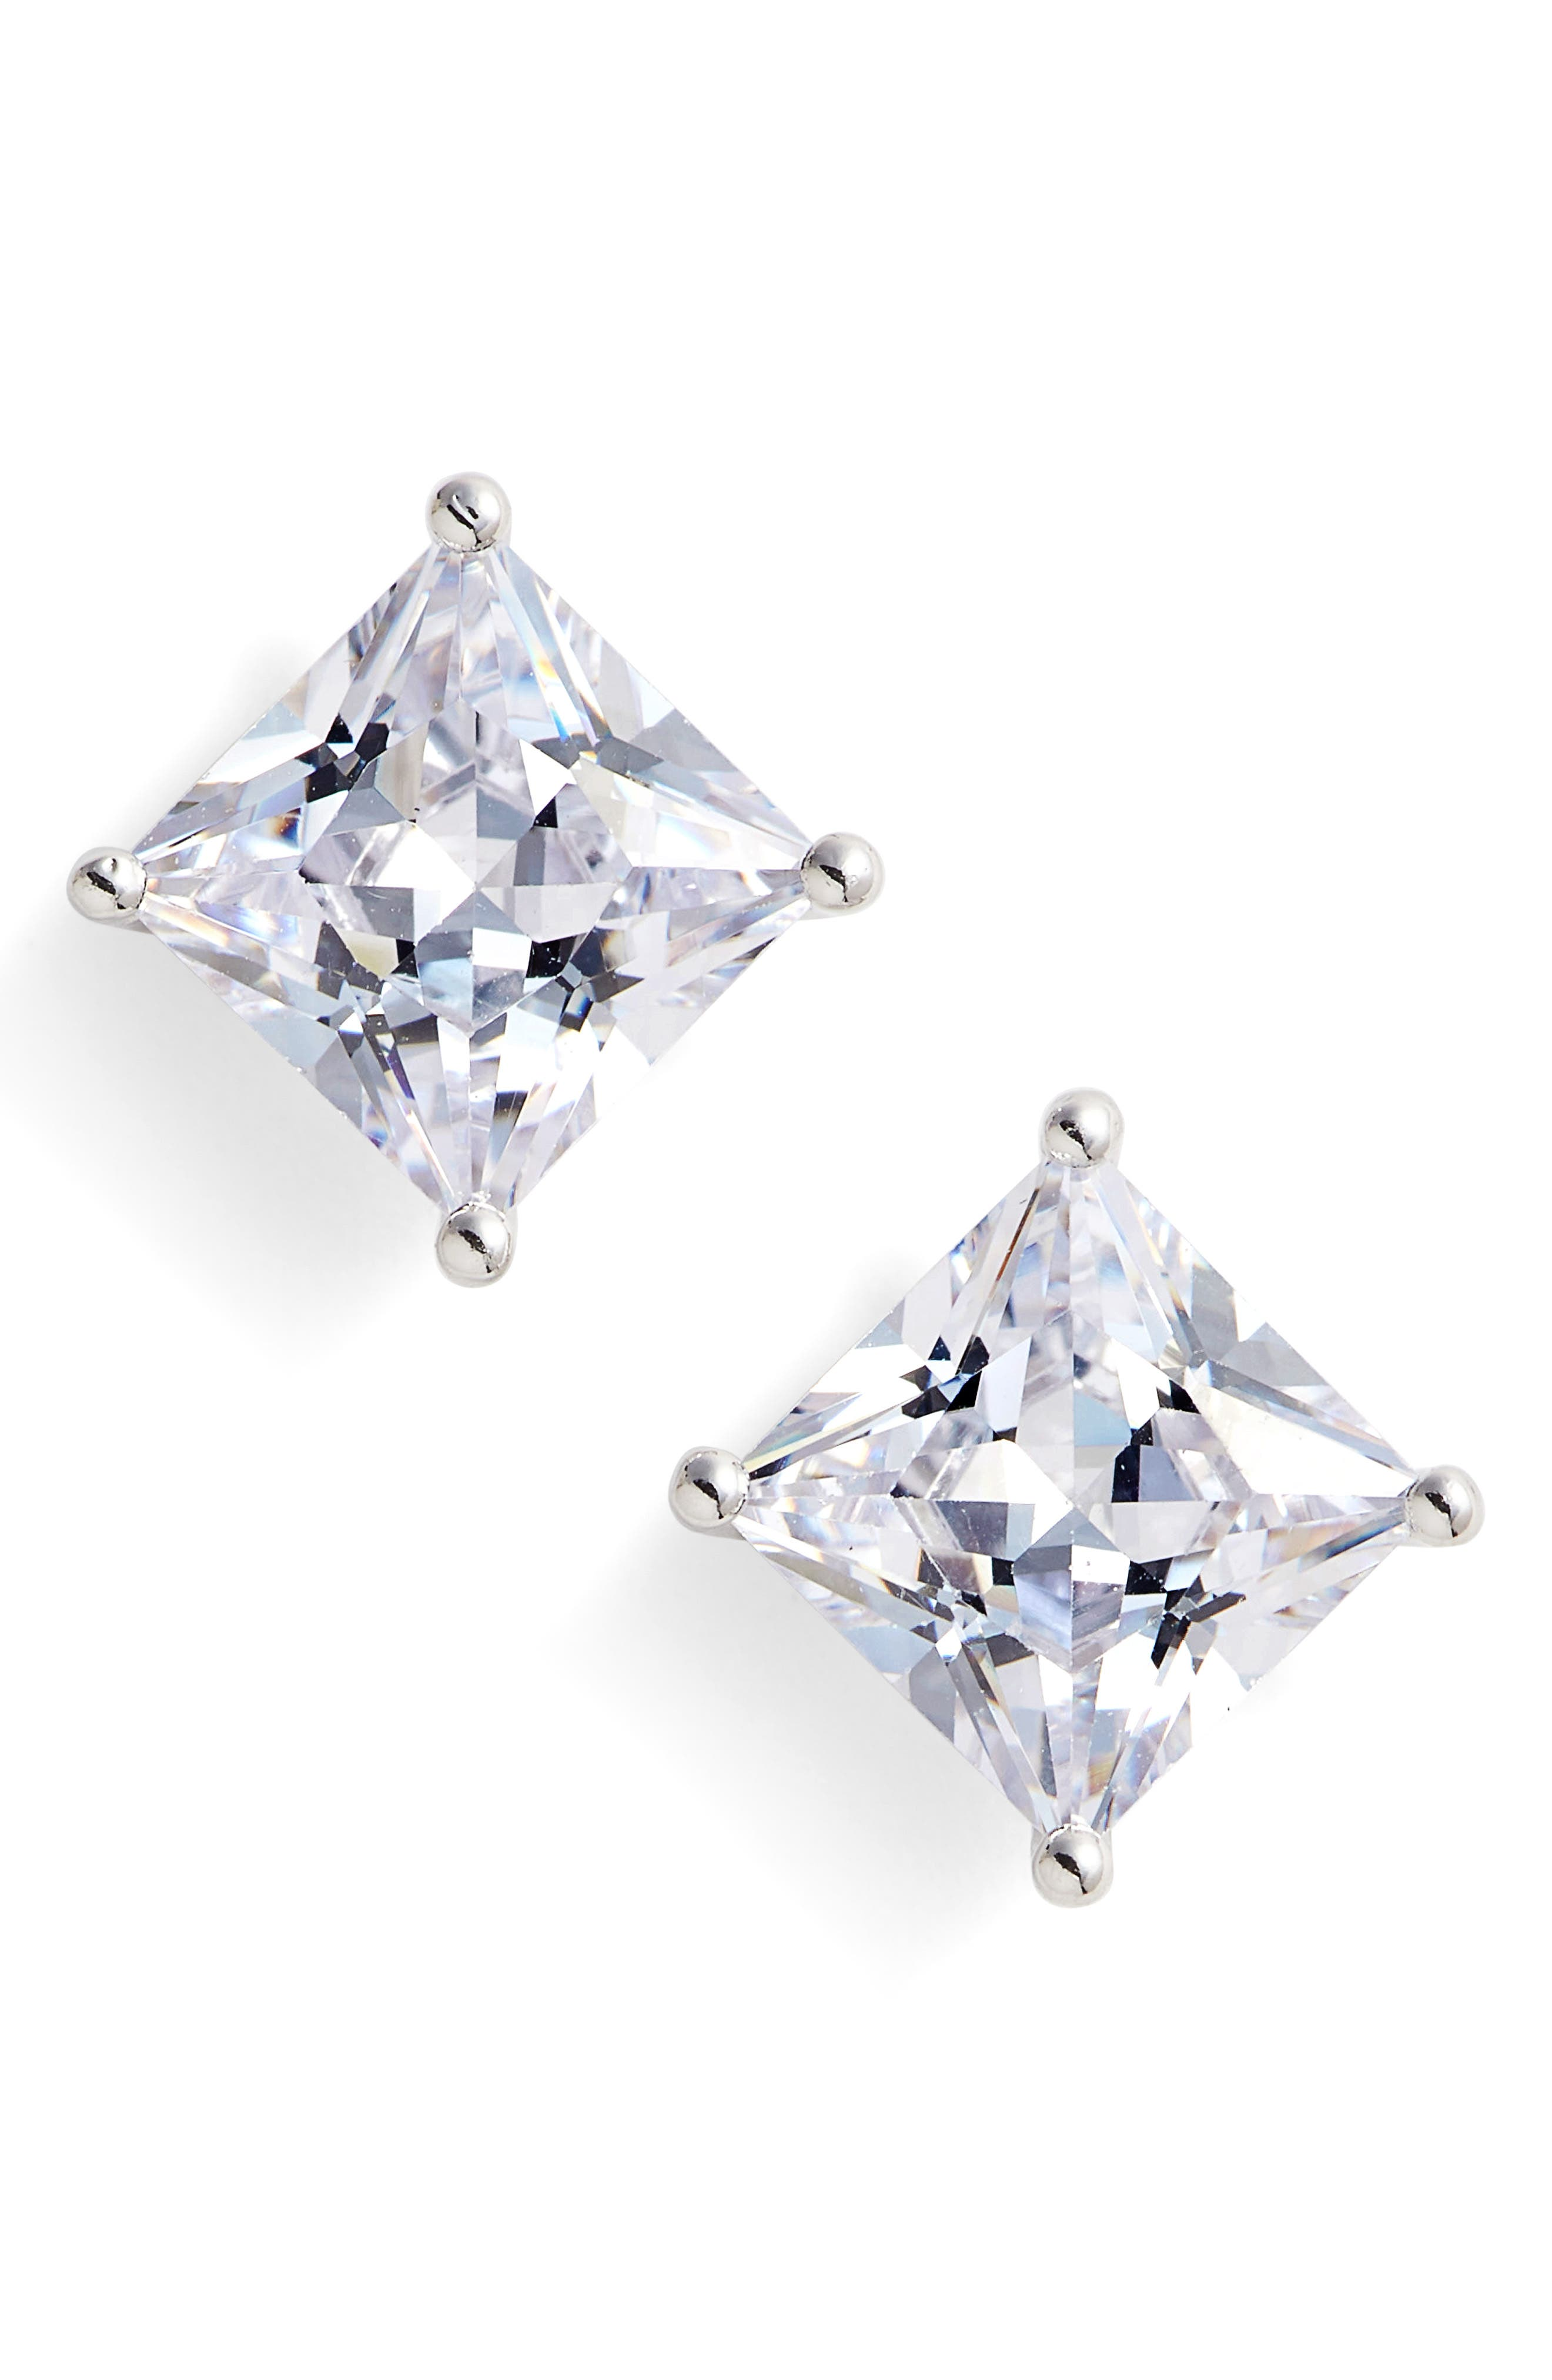 6ct tw Princess Cut Cubic Zirconia Stud Earrings,                         Main,                         color, 040